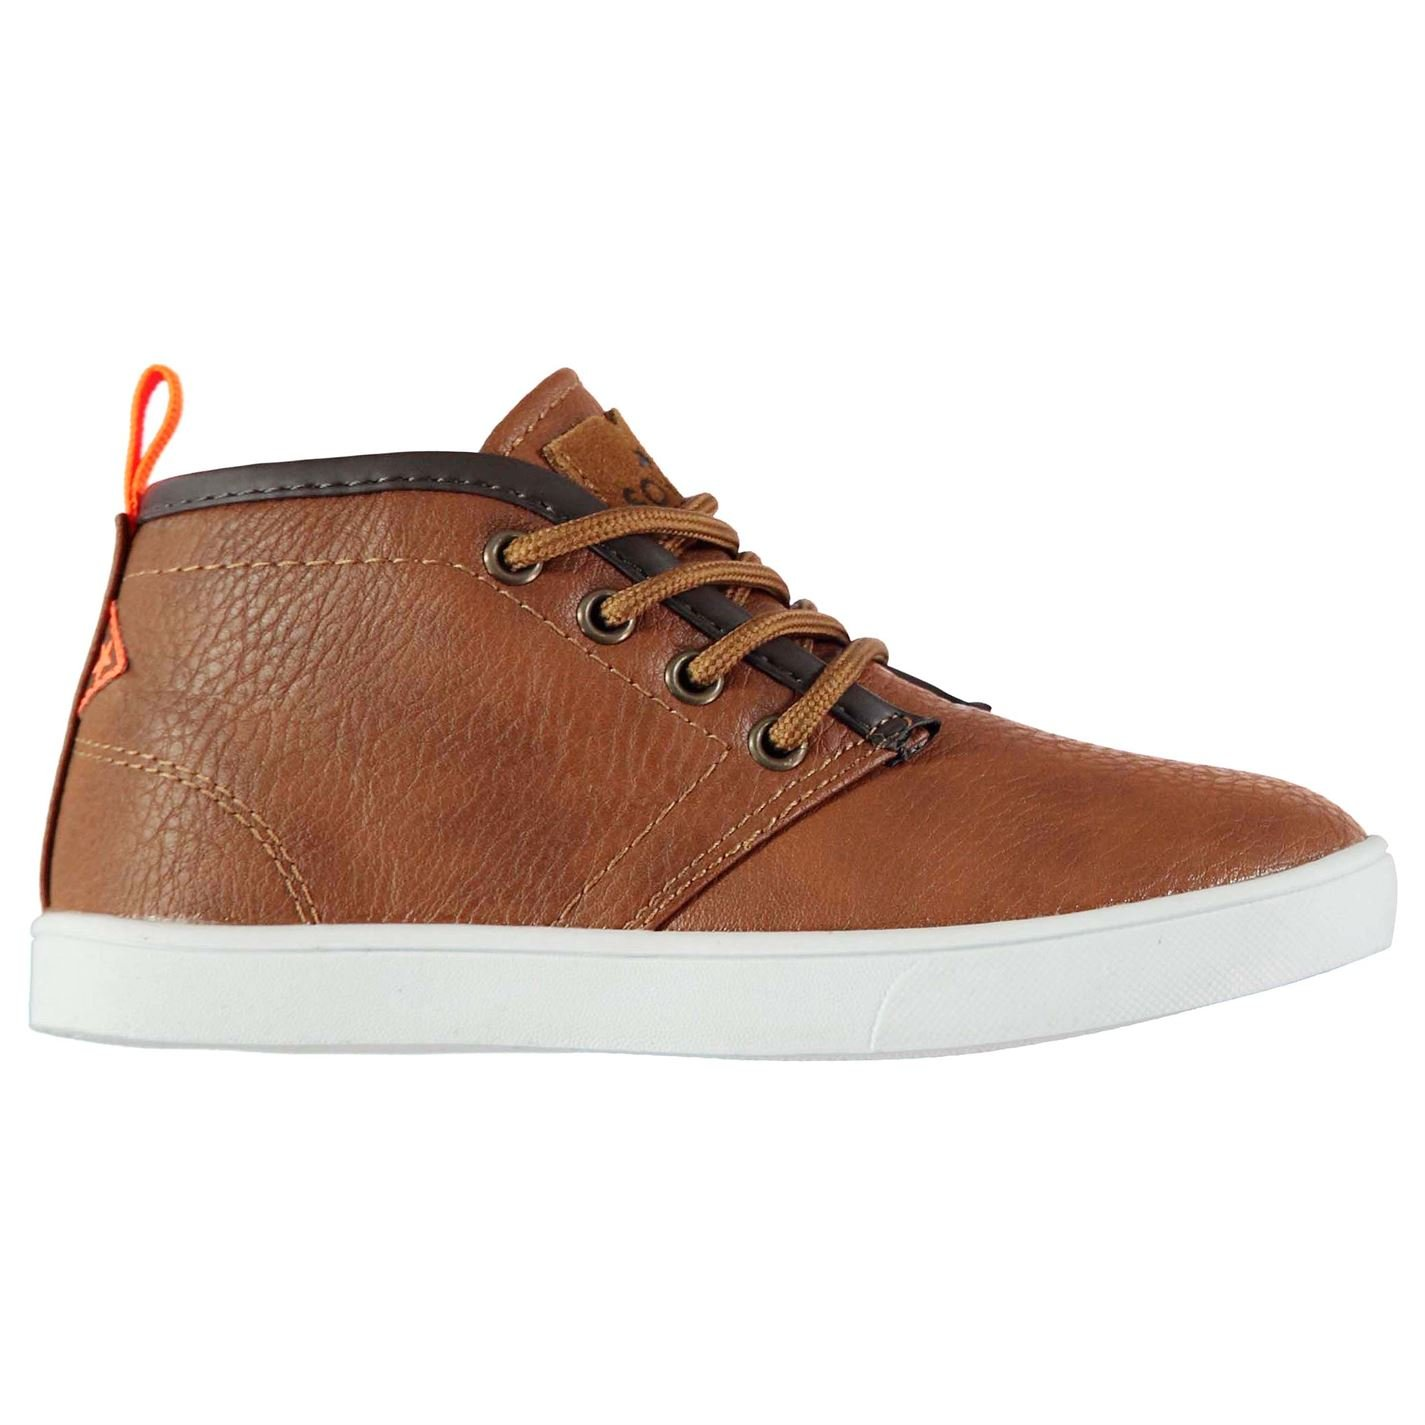 Soviet Kids Whitehall Mid Chukka Boots Lace Up Contrast Sole Shoes Child Boys Tan UK C10 (28)